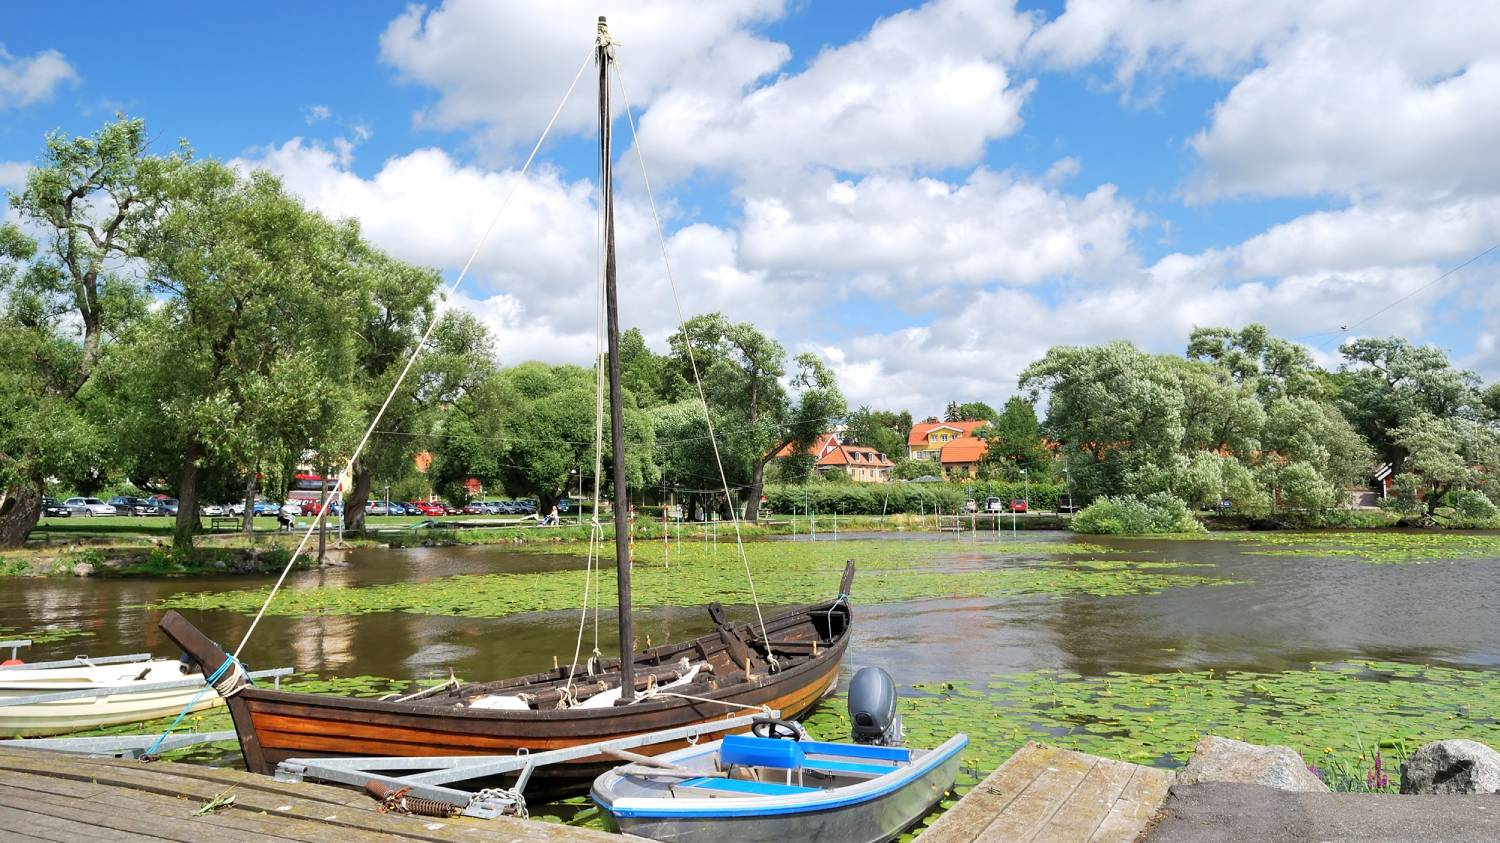 Sigtuna - Things To Do In Stockholm